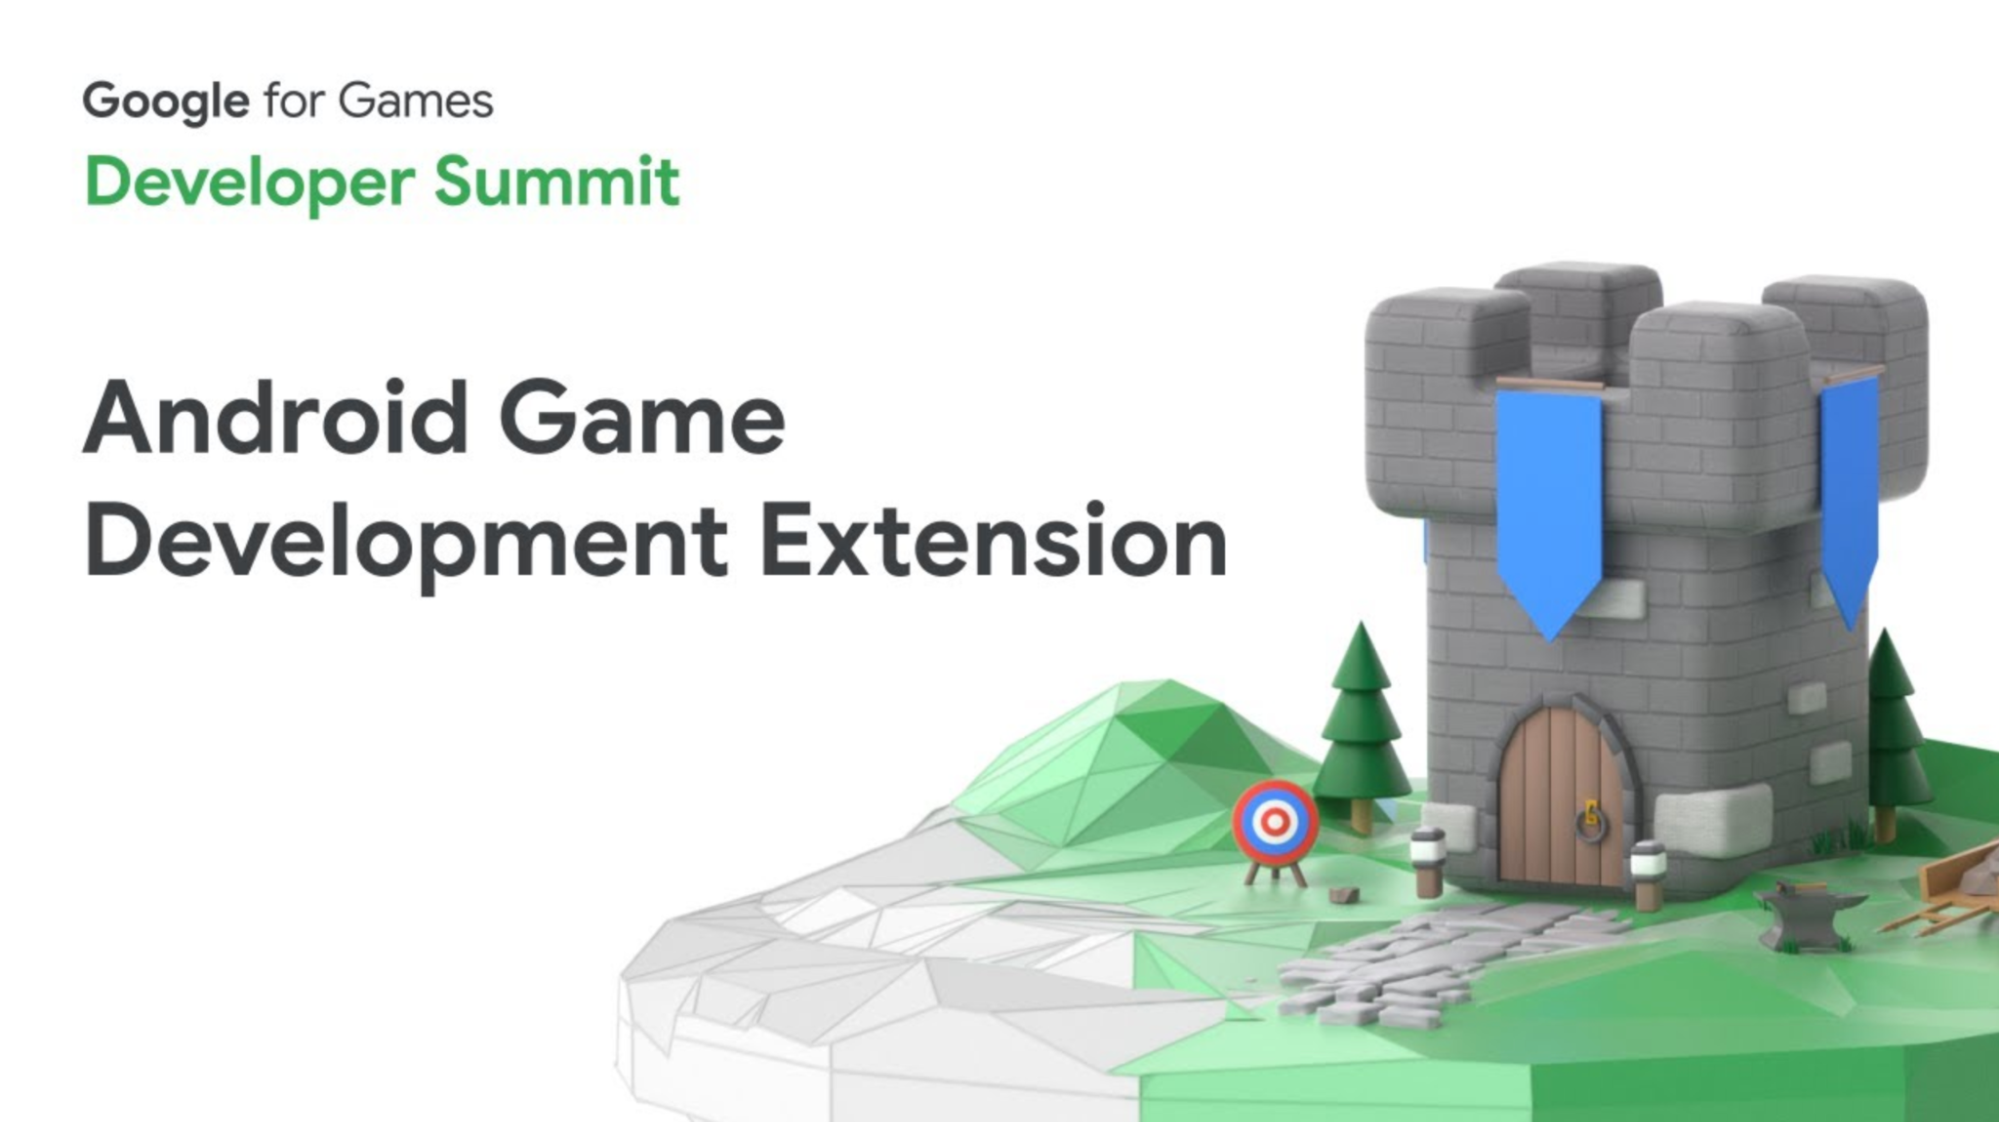 Android Game Development Extension image